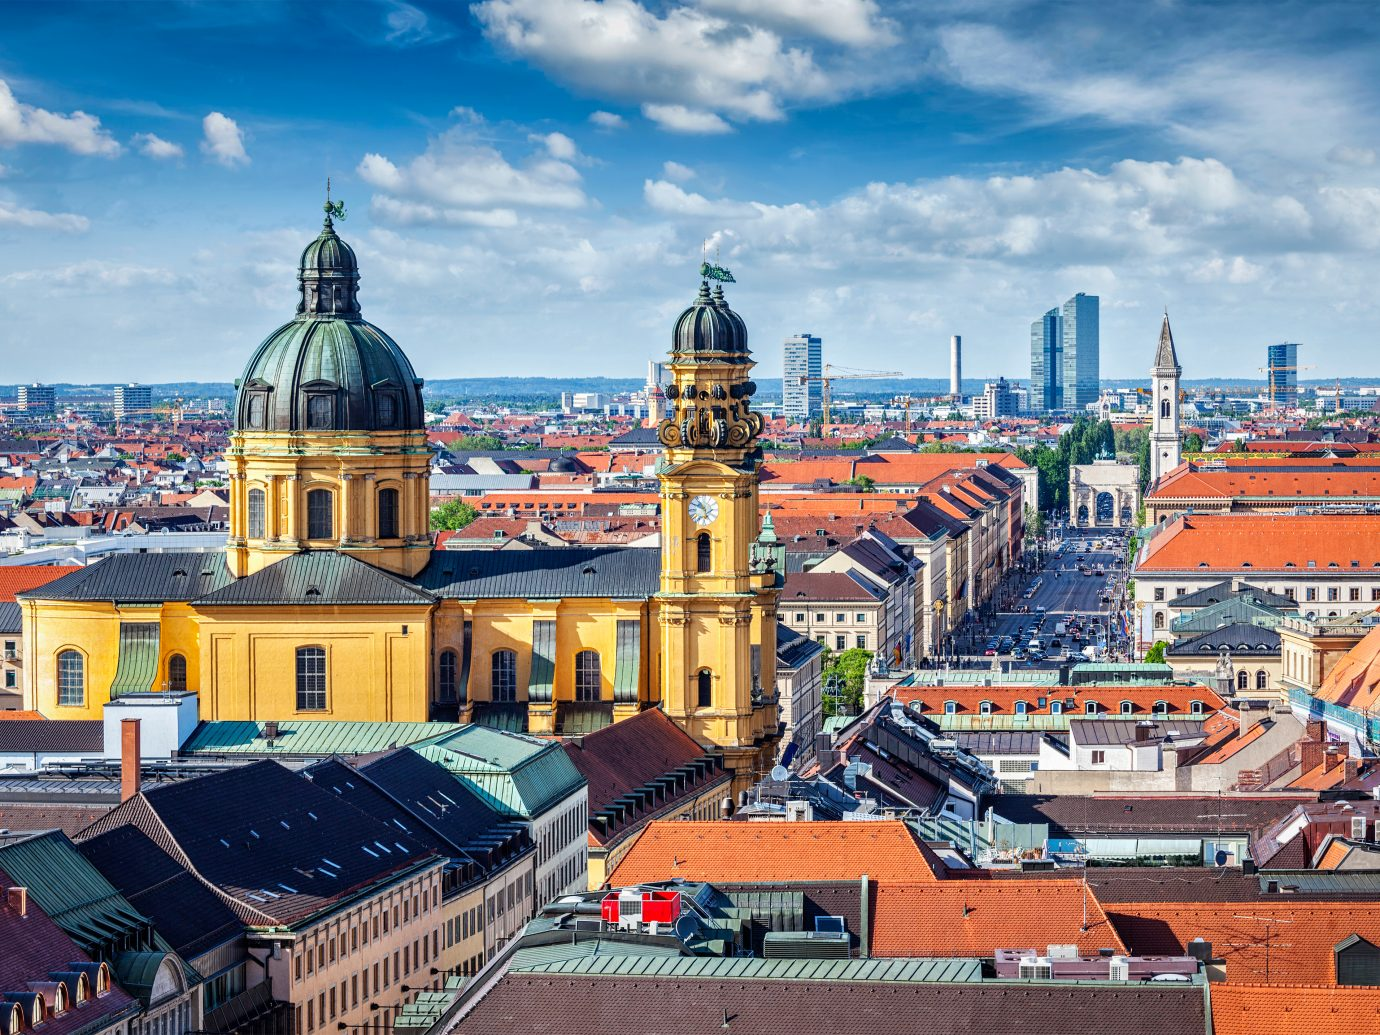 Aerial view of Munich over Theatine Church of St. Cajetan